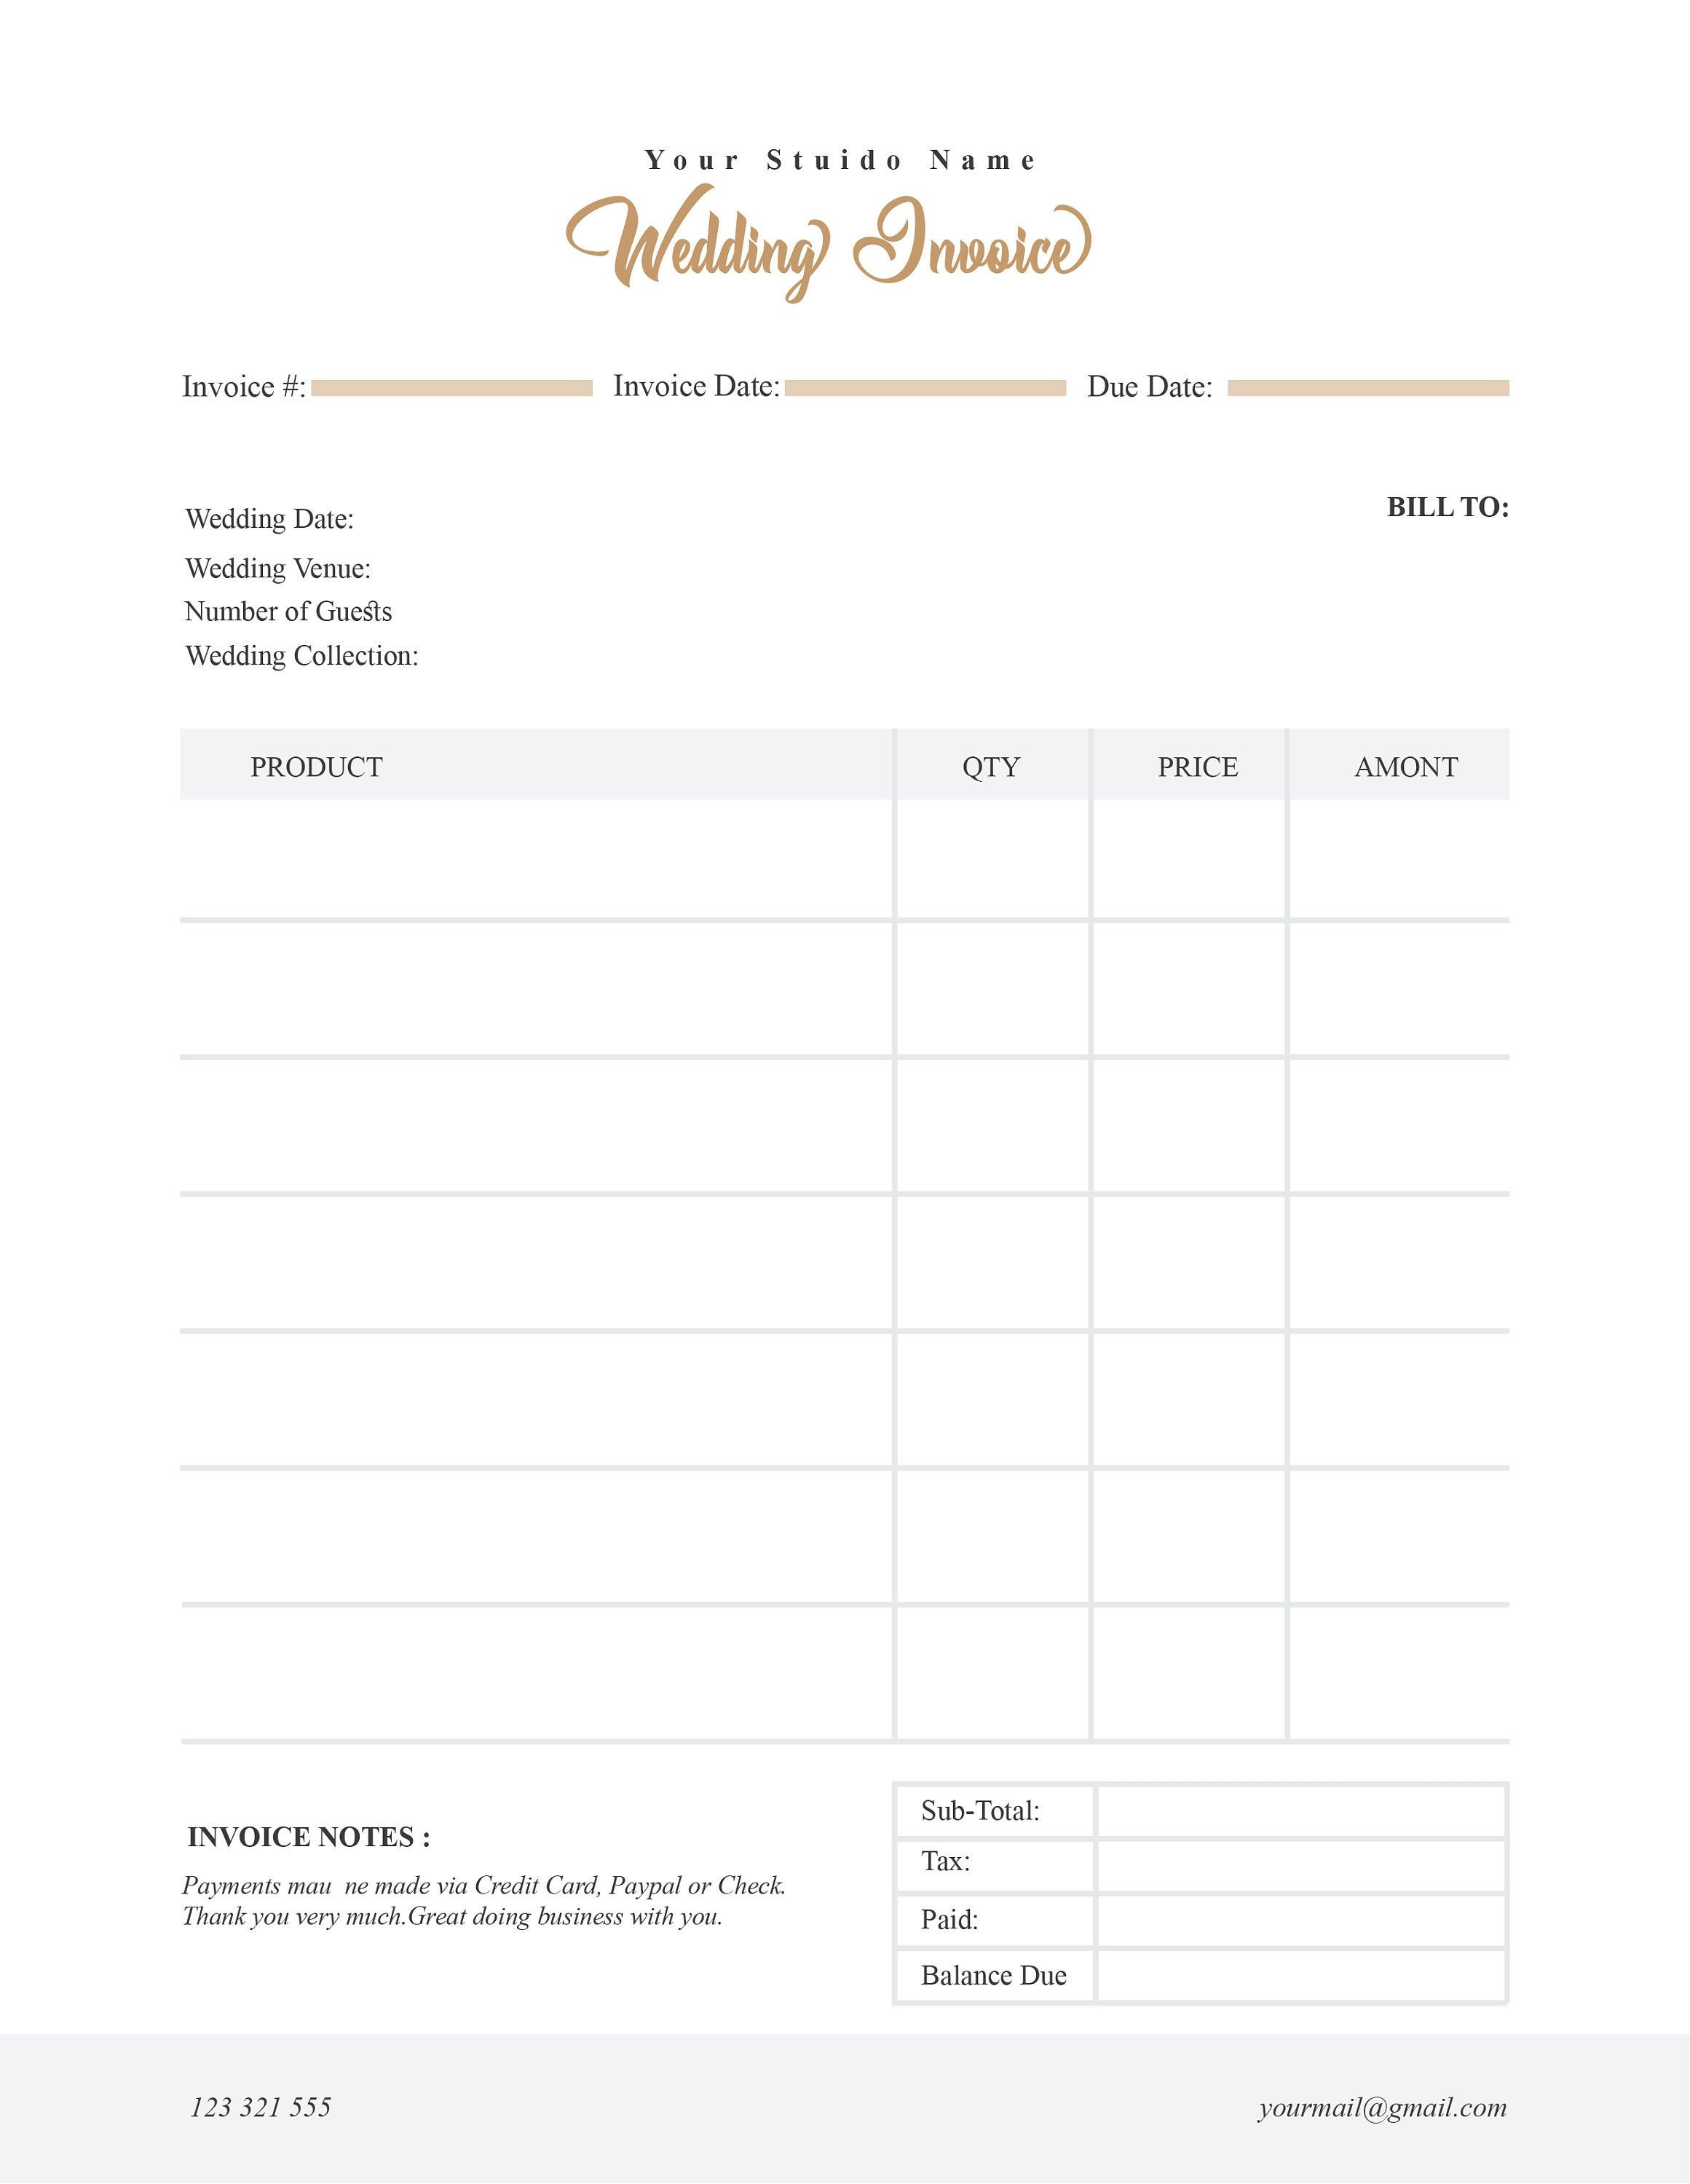 Wedding Photography Invoice Template Price Guide List For Photographers Photography Ph Photography Invoice Photography Invoice Template Invoice Design Template